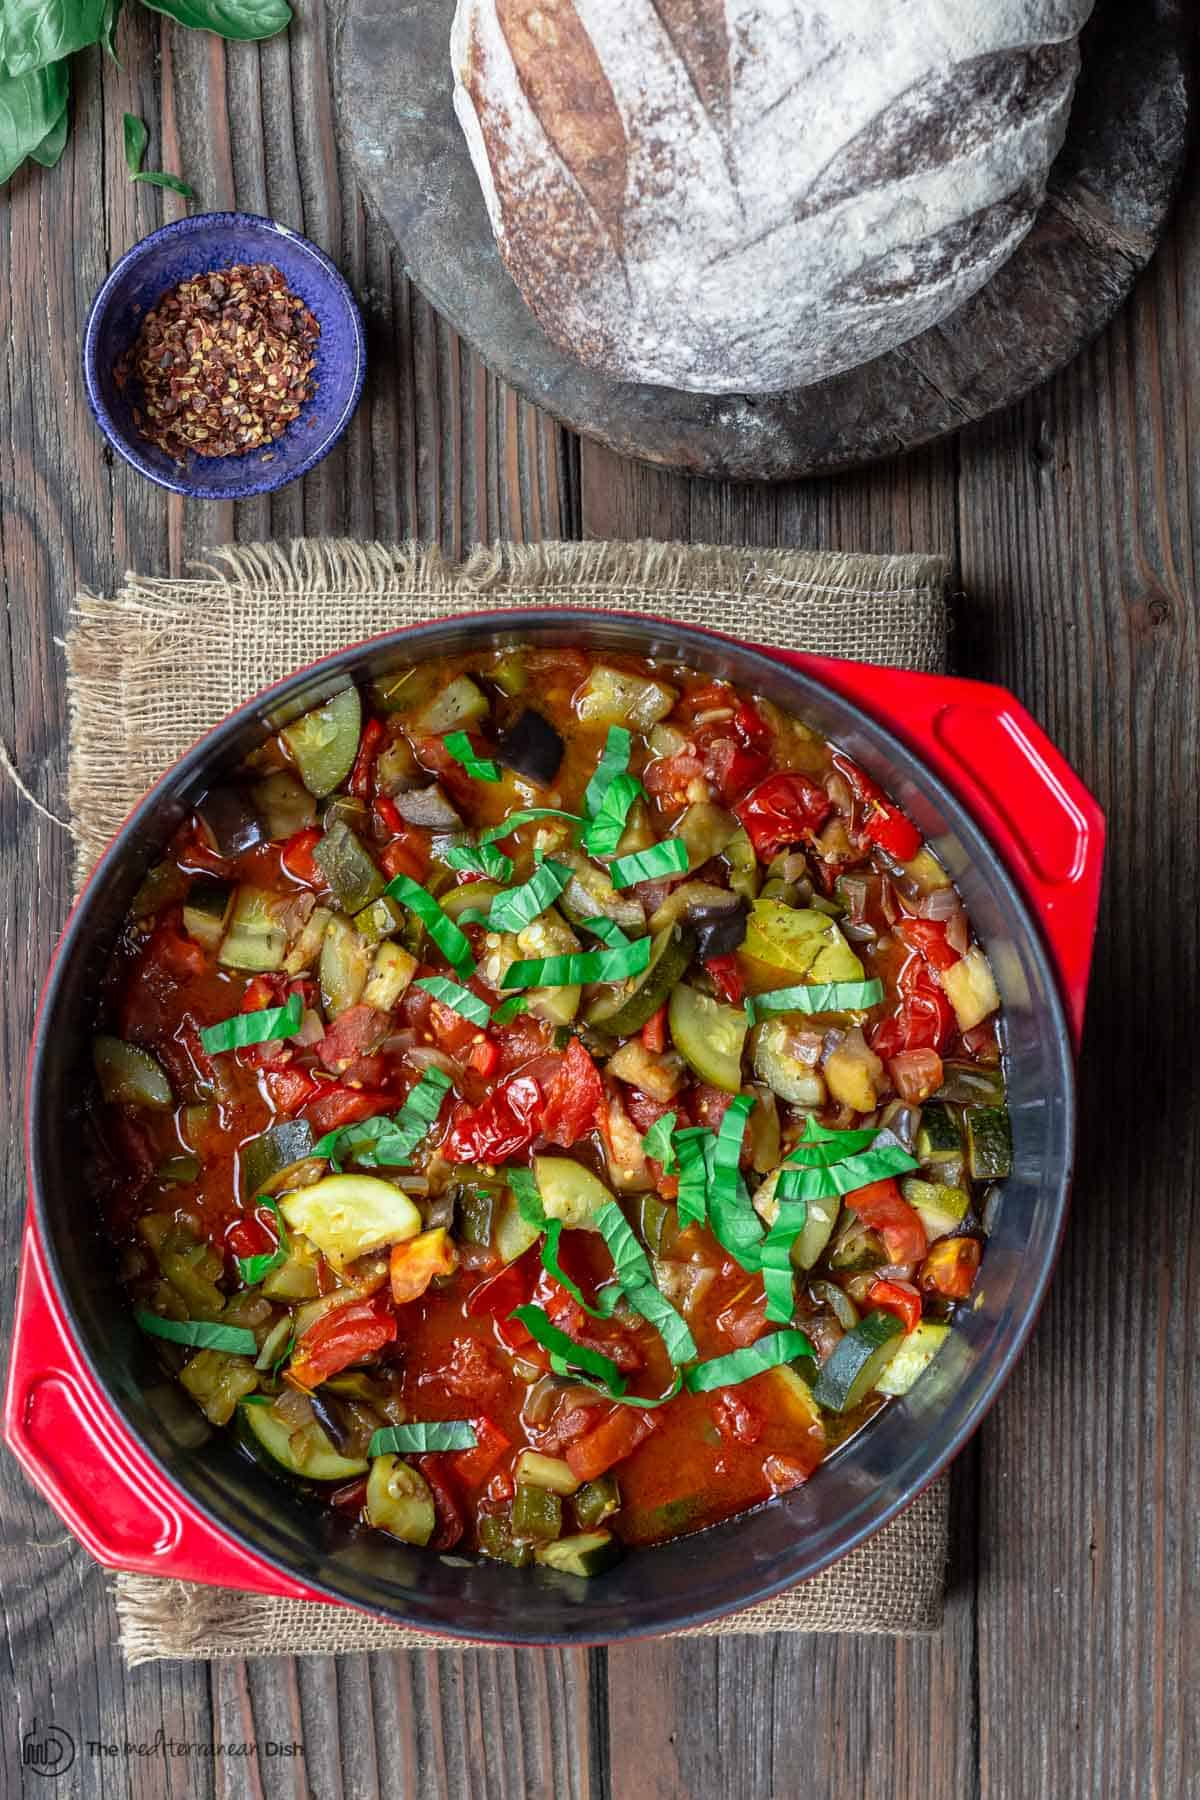 Rataouille served in a large red pot on a table with a loaf of bread